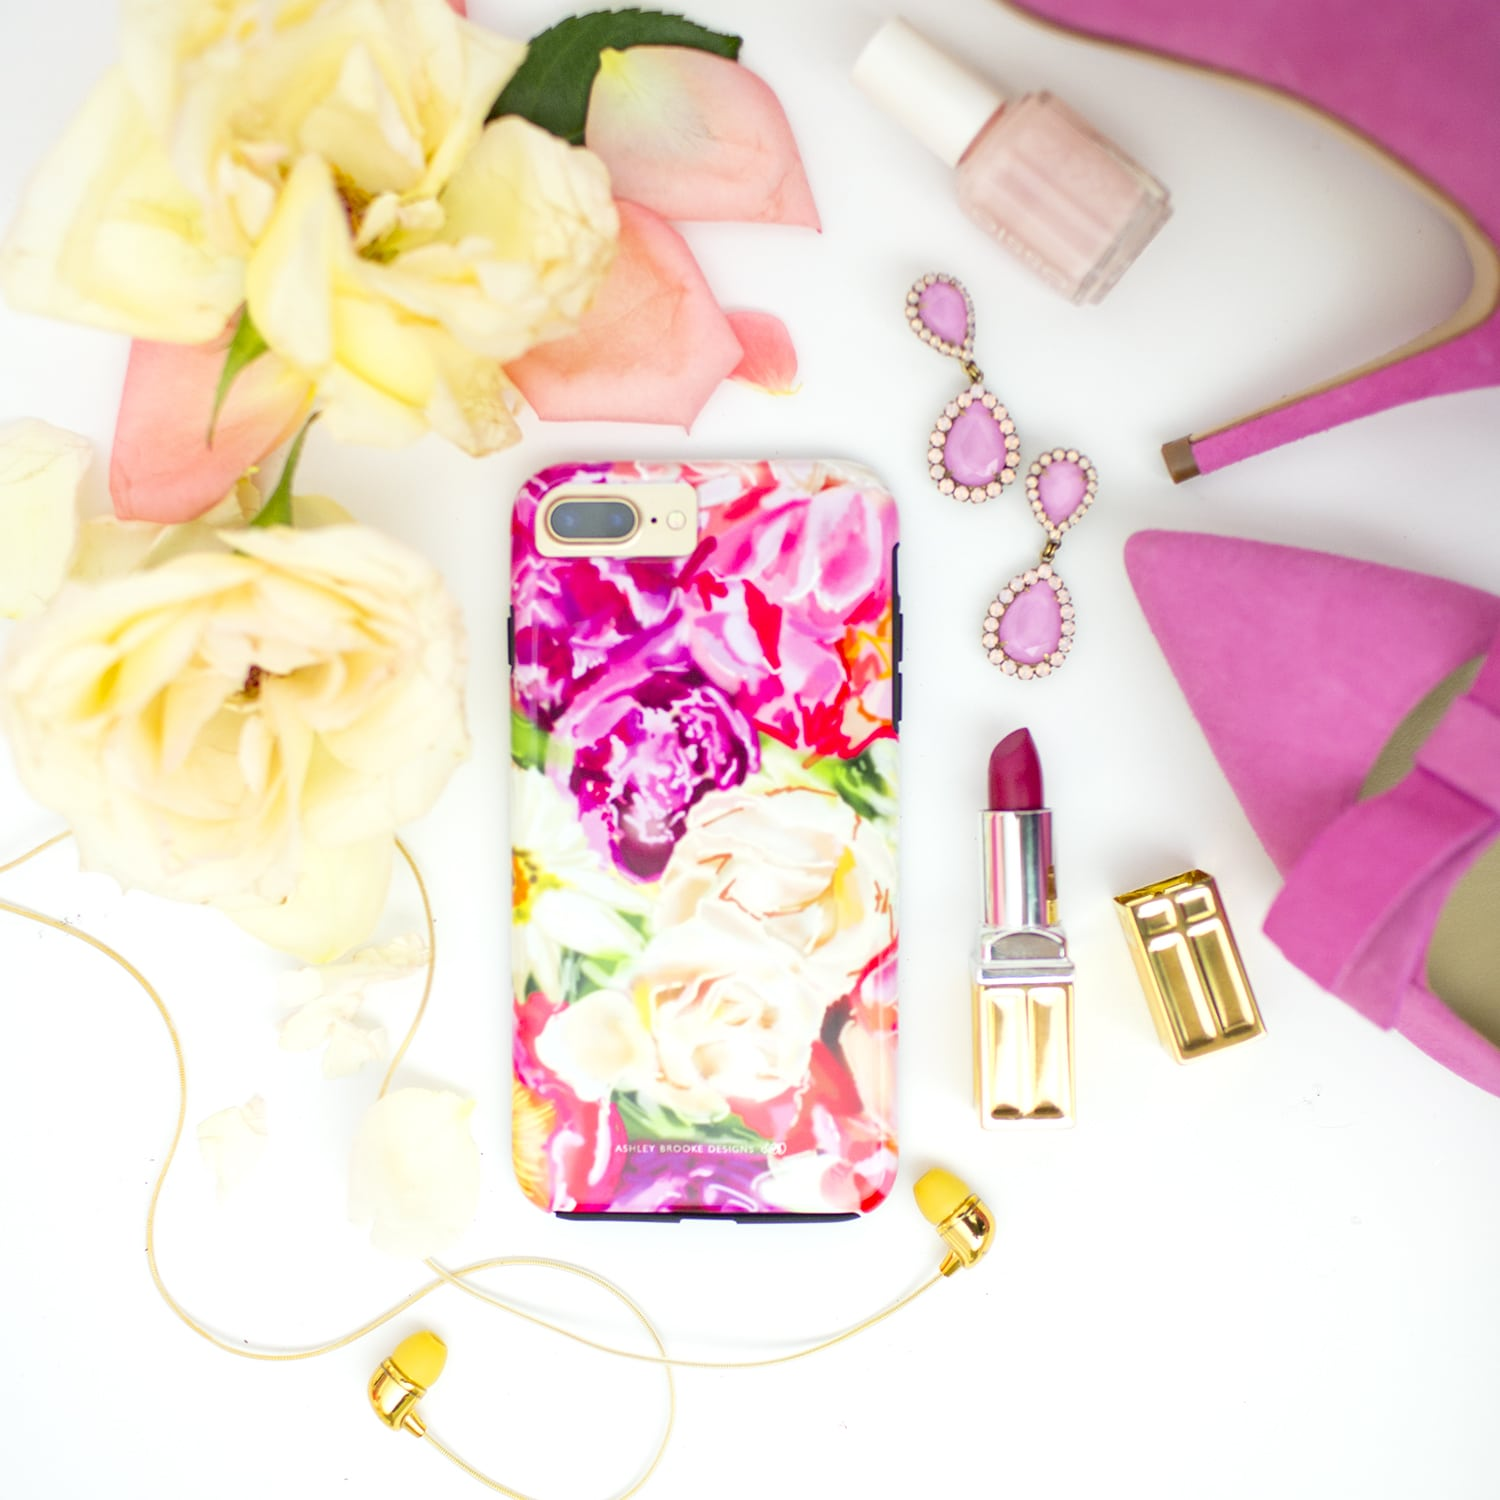 Ashley Brooke Designs Hand Illustrated Peony Floral Phone Cases | ashleybrookedesigns.com